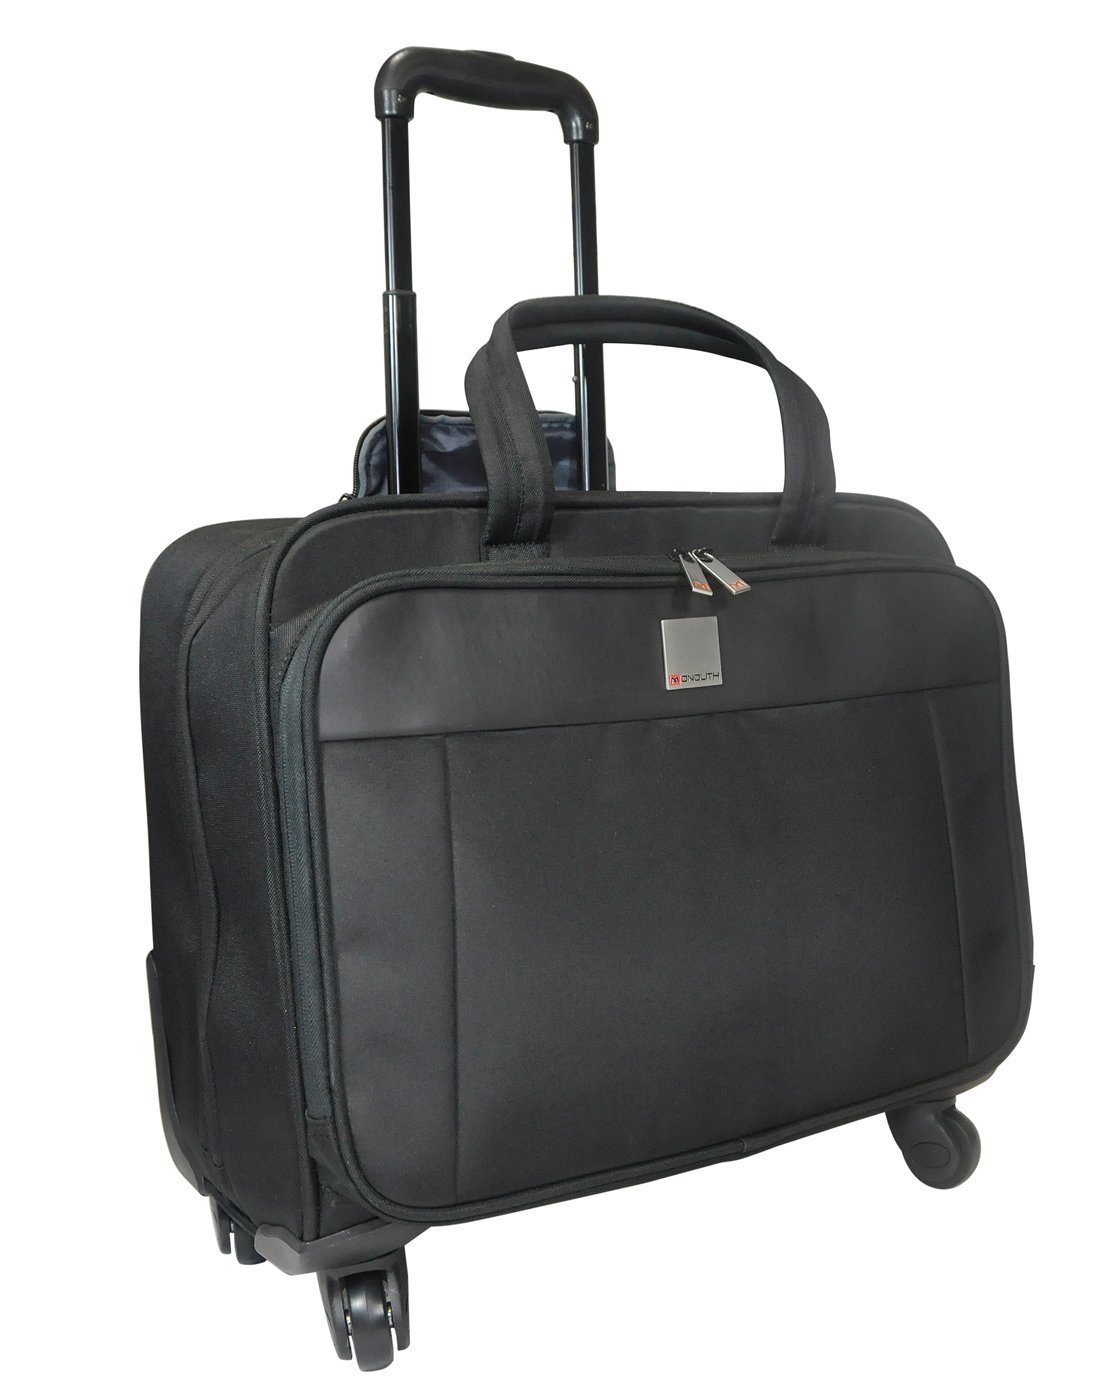 Bags & Cases Monolith Motion II 4 Wheeled Laptop Case